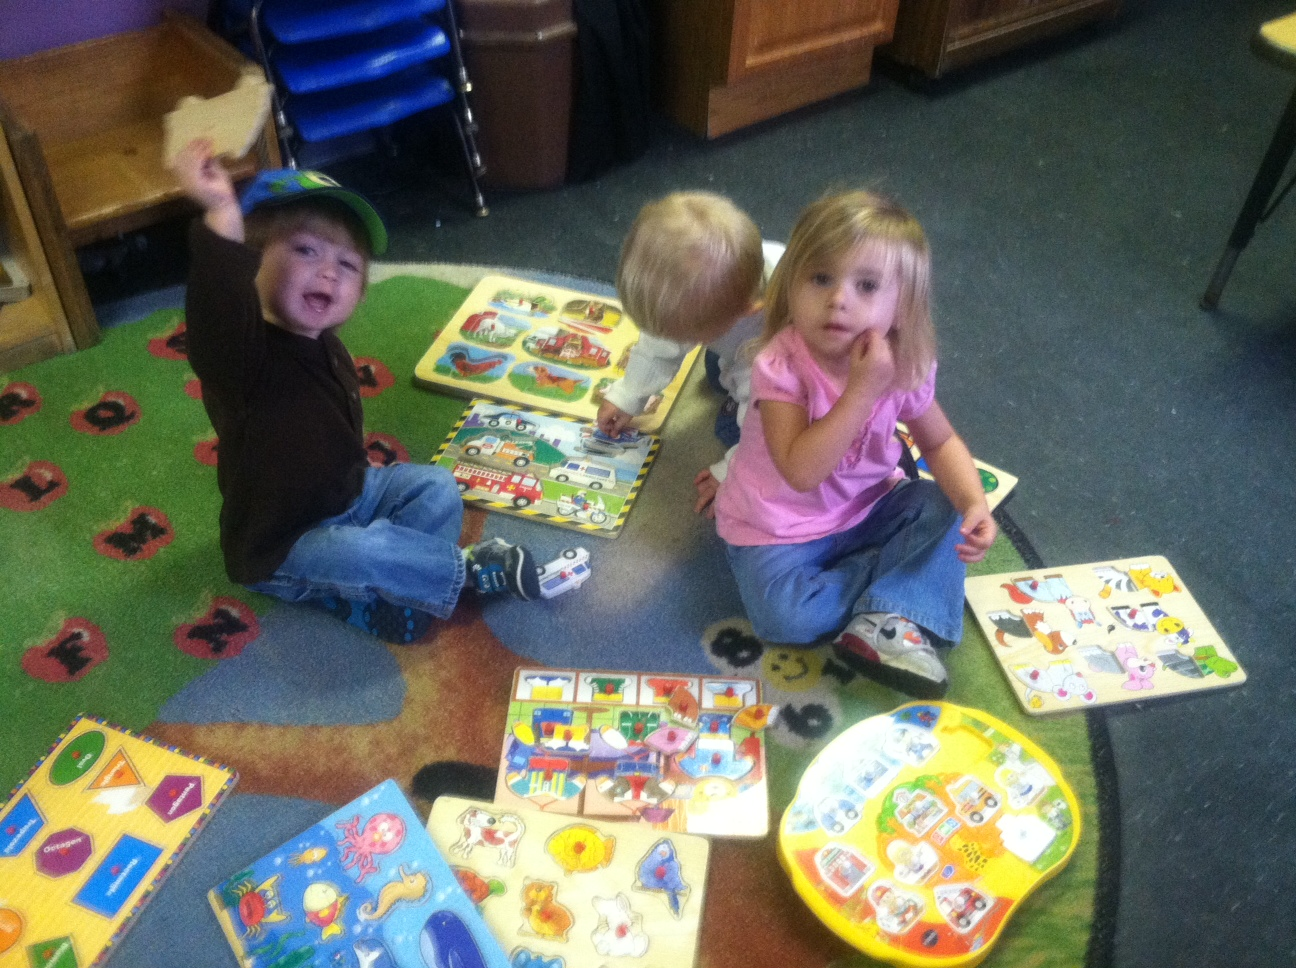 Children playing at Christian day care center in High Point, NC